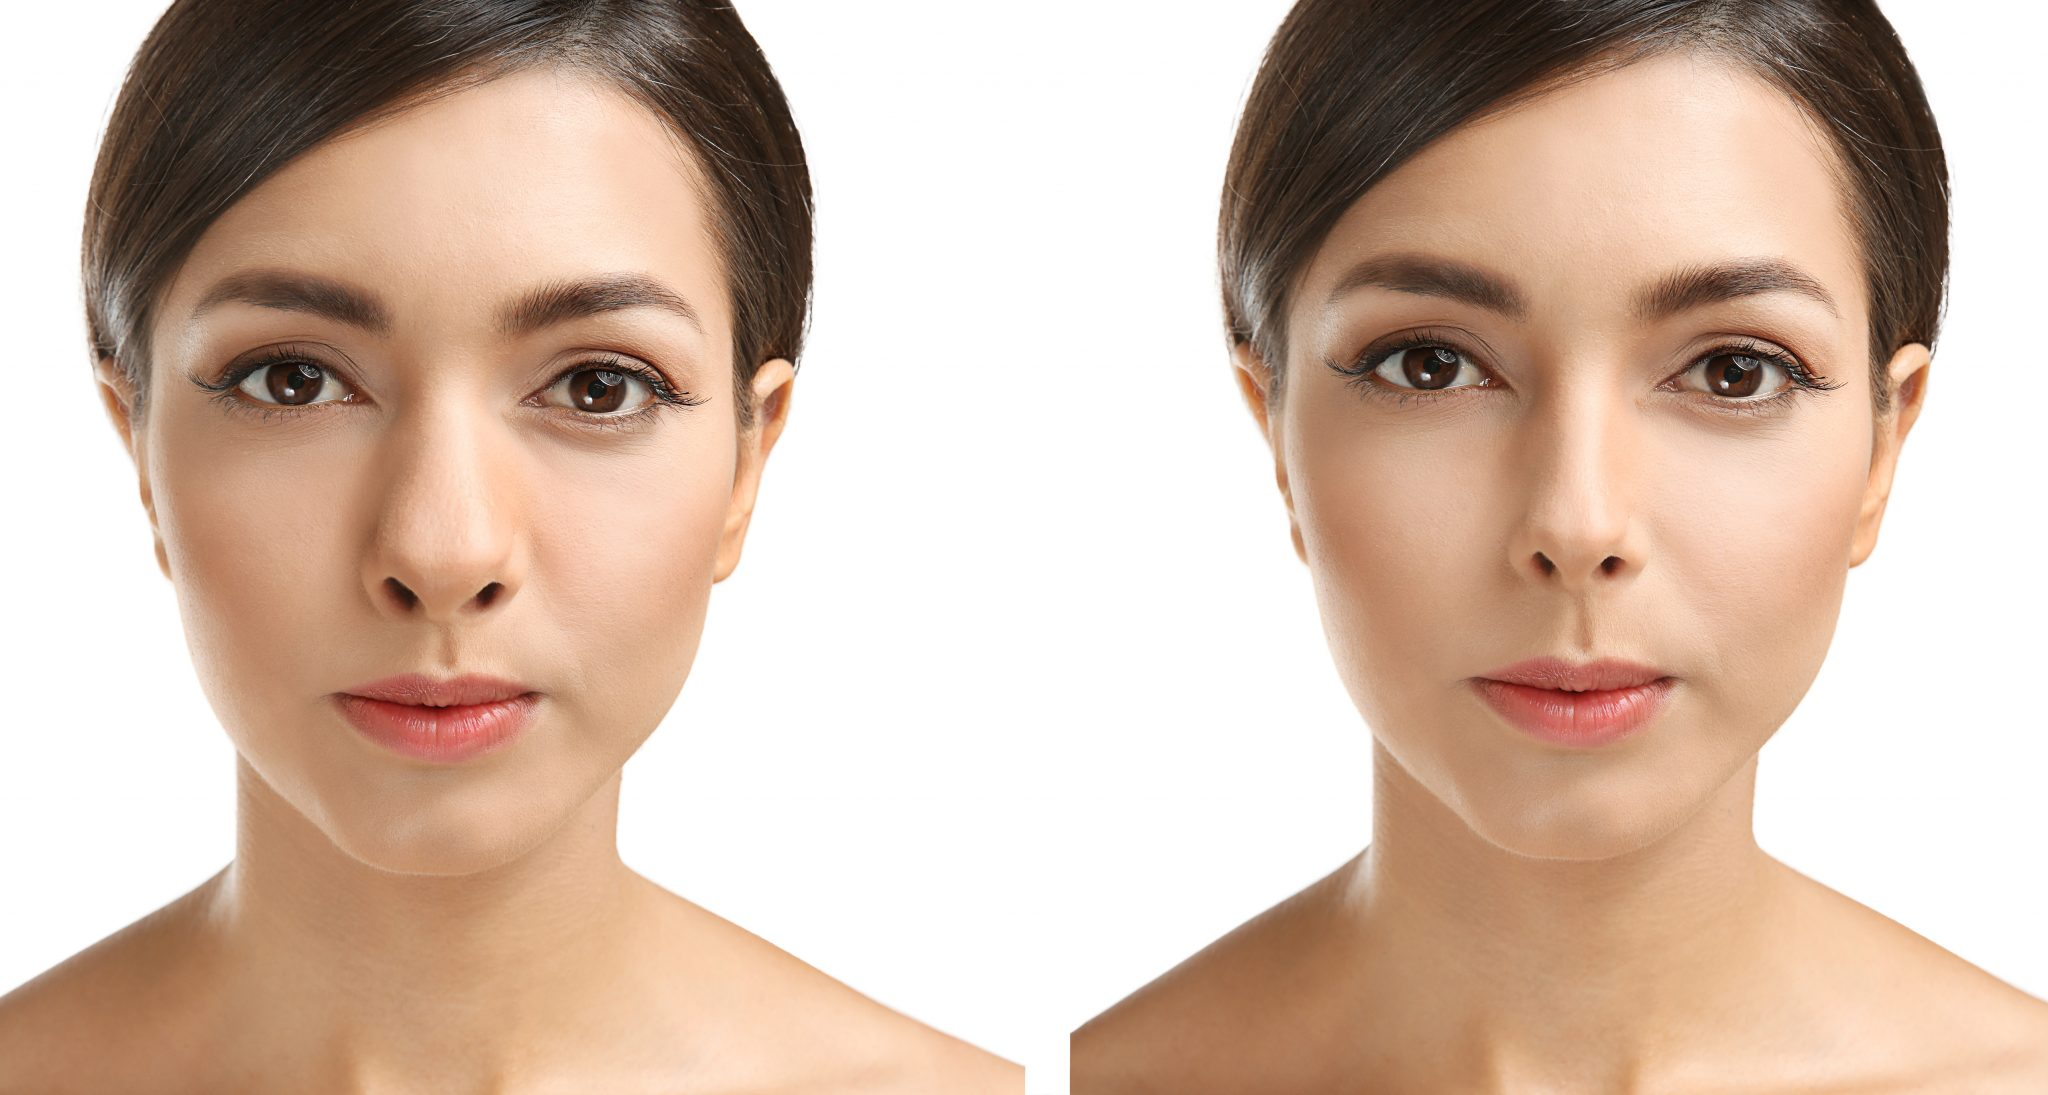 Young woman before and after rhinoplasty.